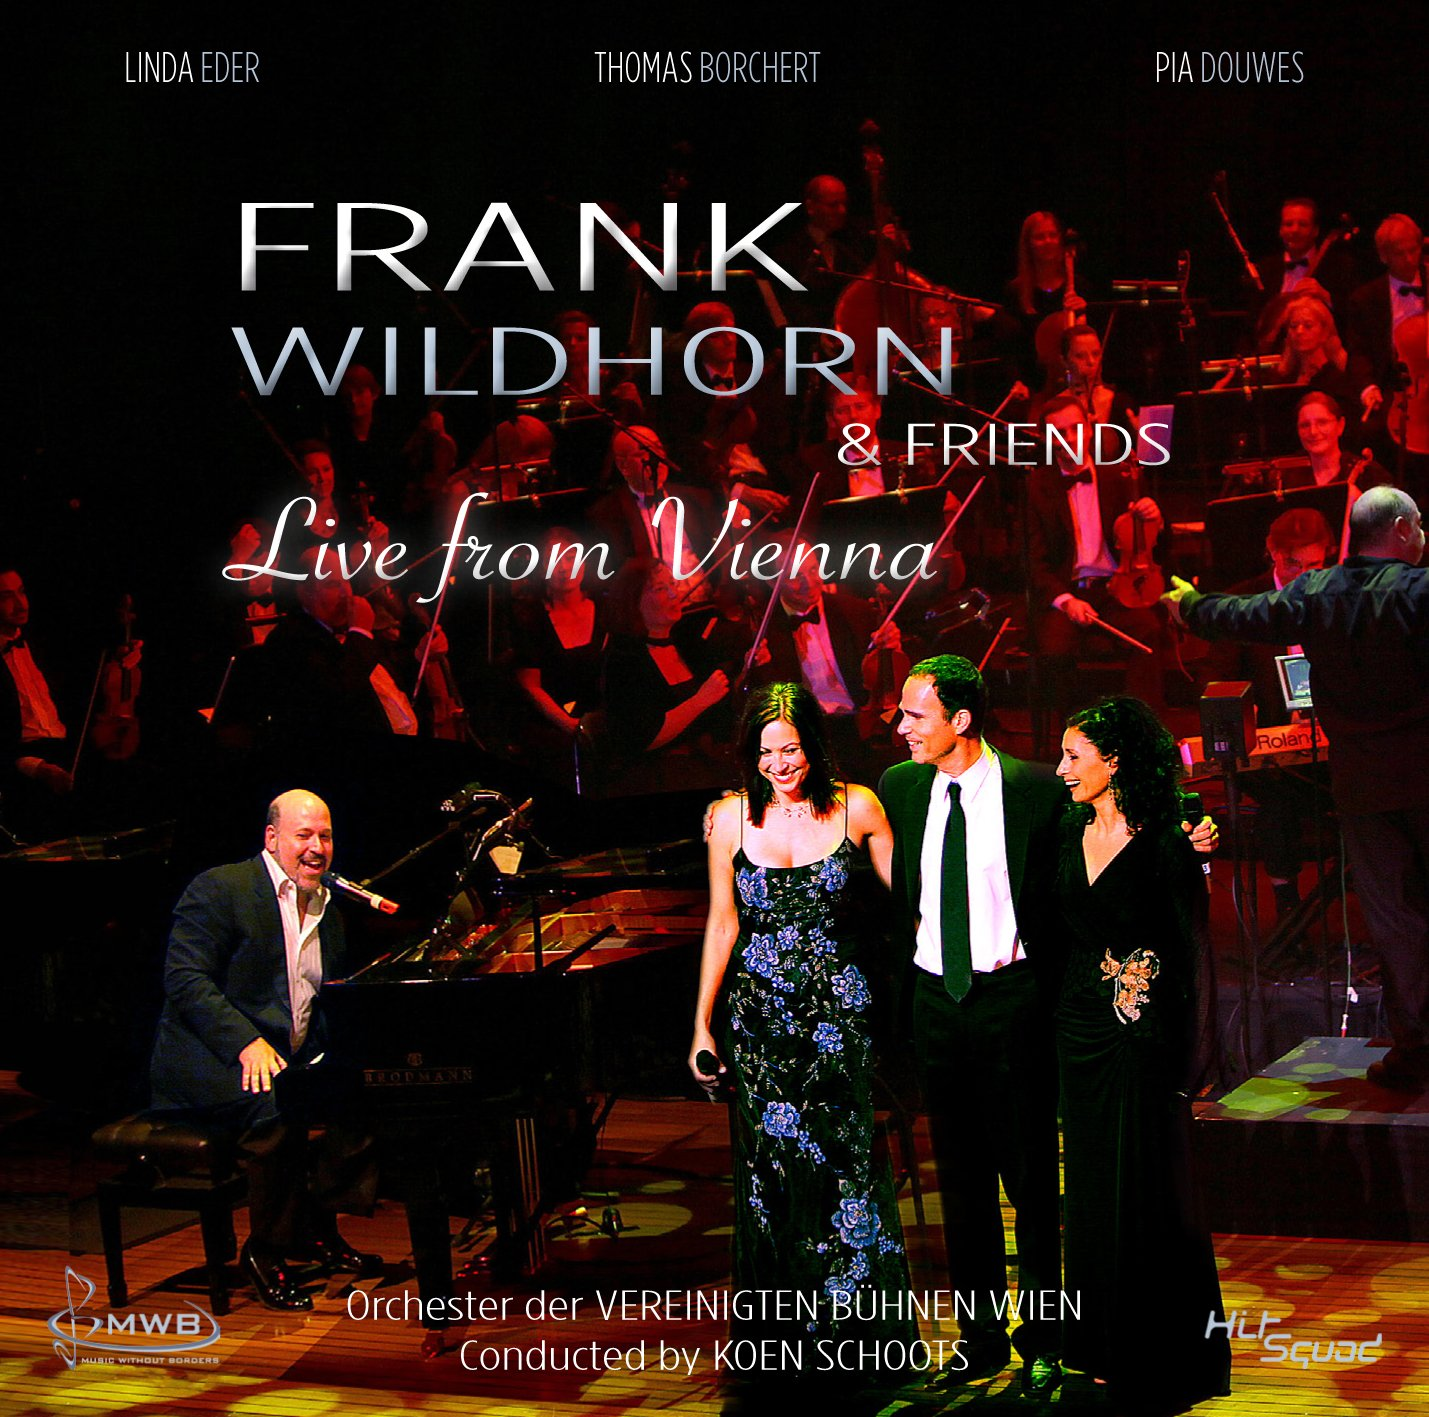 Frank Wildhorn & Friends - Live from Vienna by HitSquad